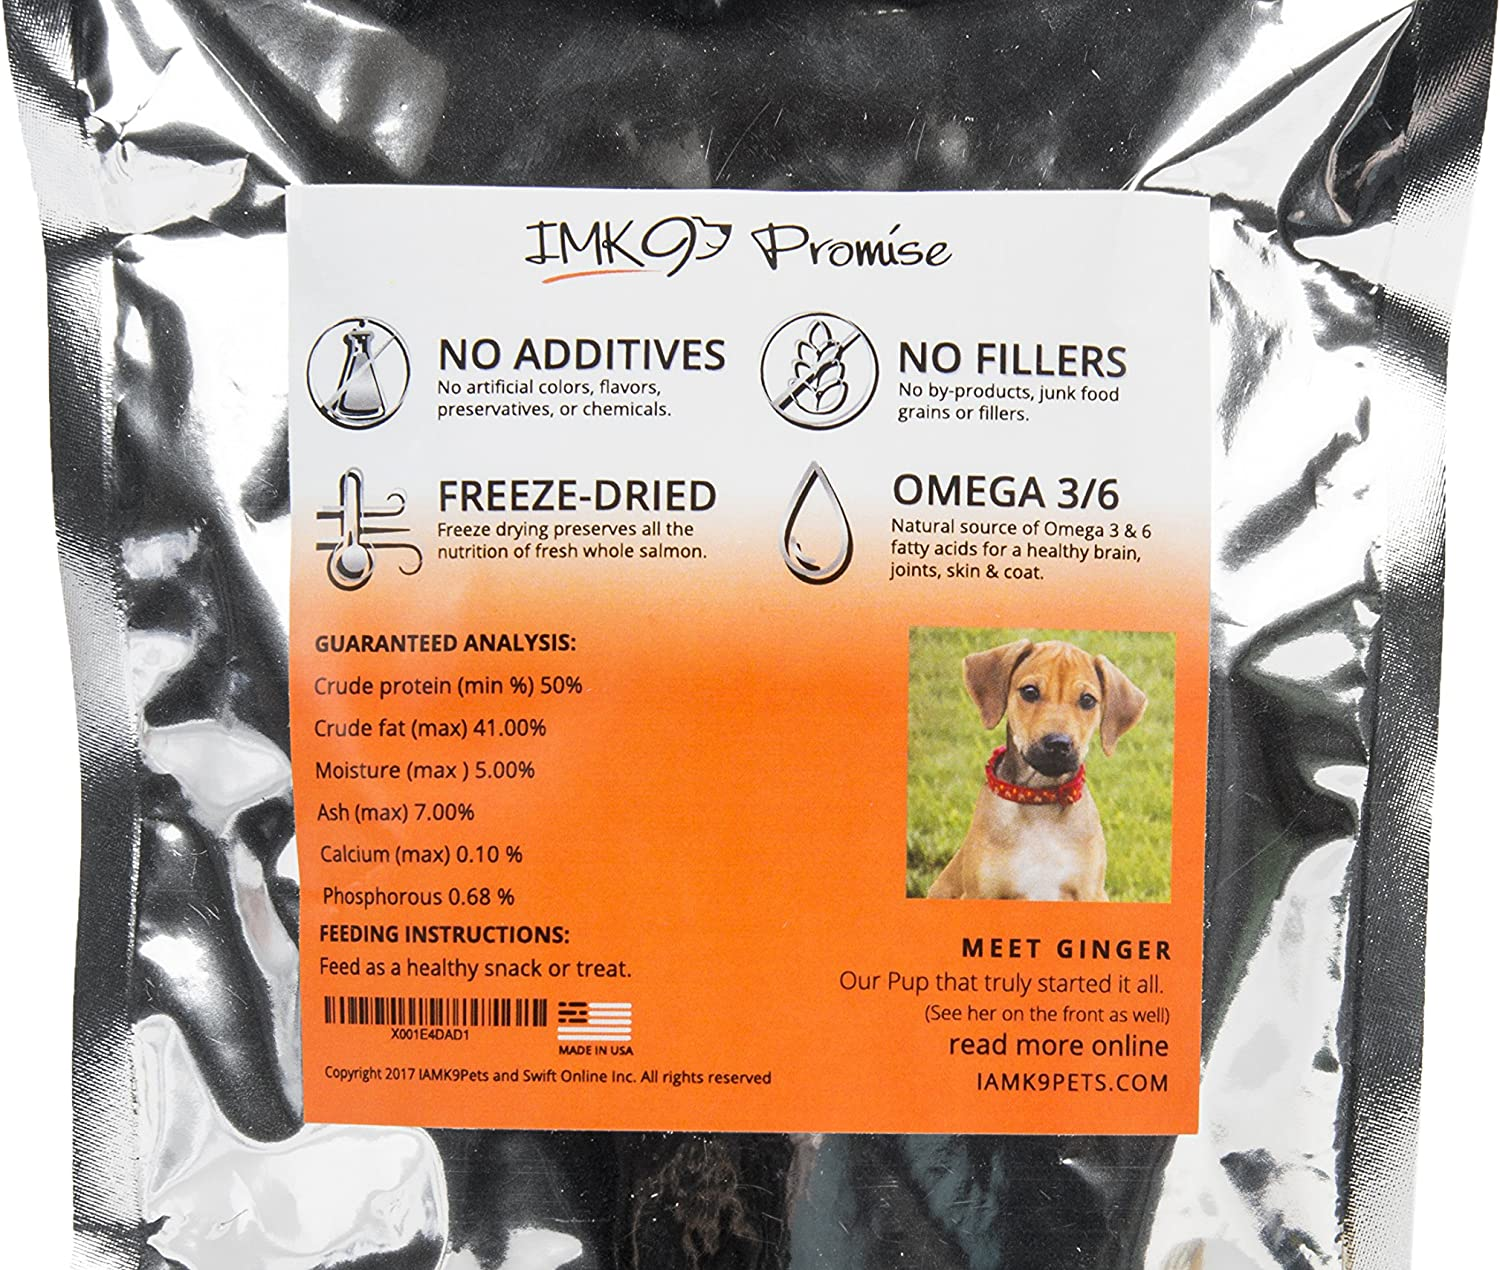 All Natural Freeze Dried Salmon Dog Treats – With Omega 3 and Omega 6 Fish Oil – By IM K9 – 100% Pure Fish With Skin – Gluten Free, Grain Free, No Soy – Made in the USA